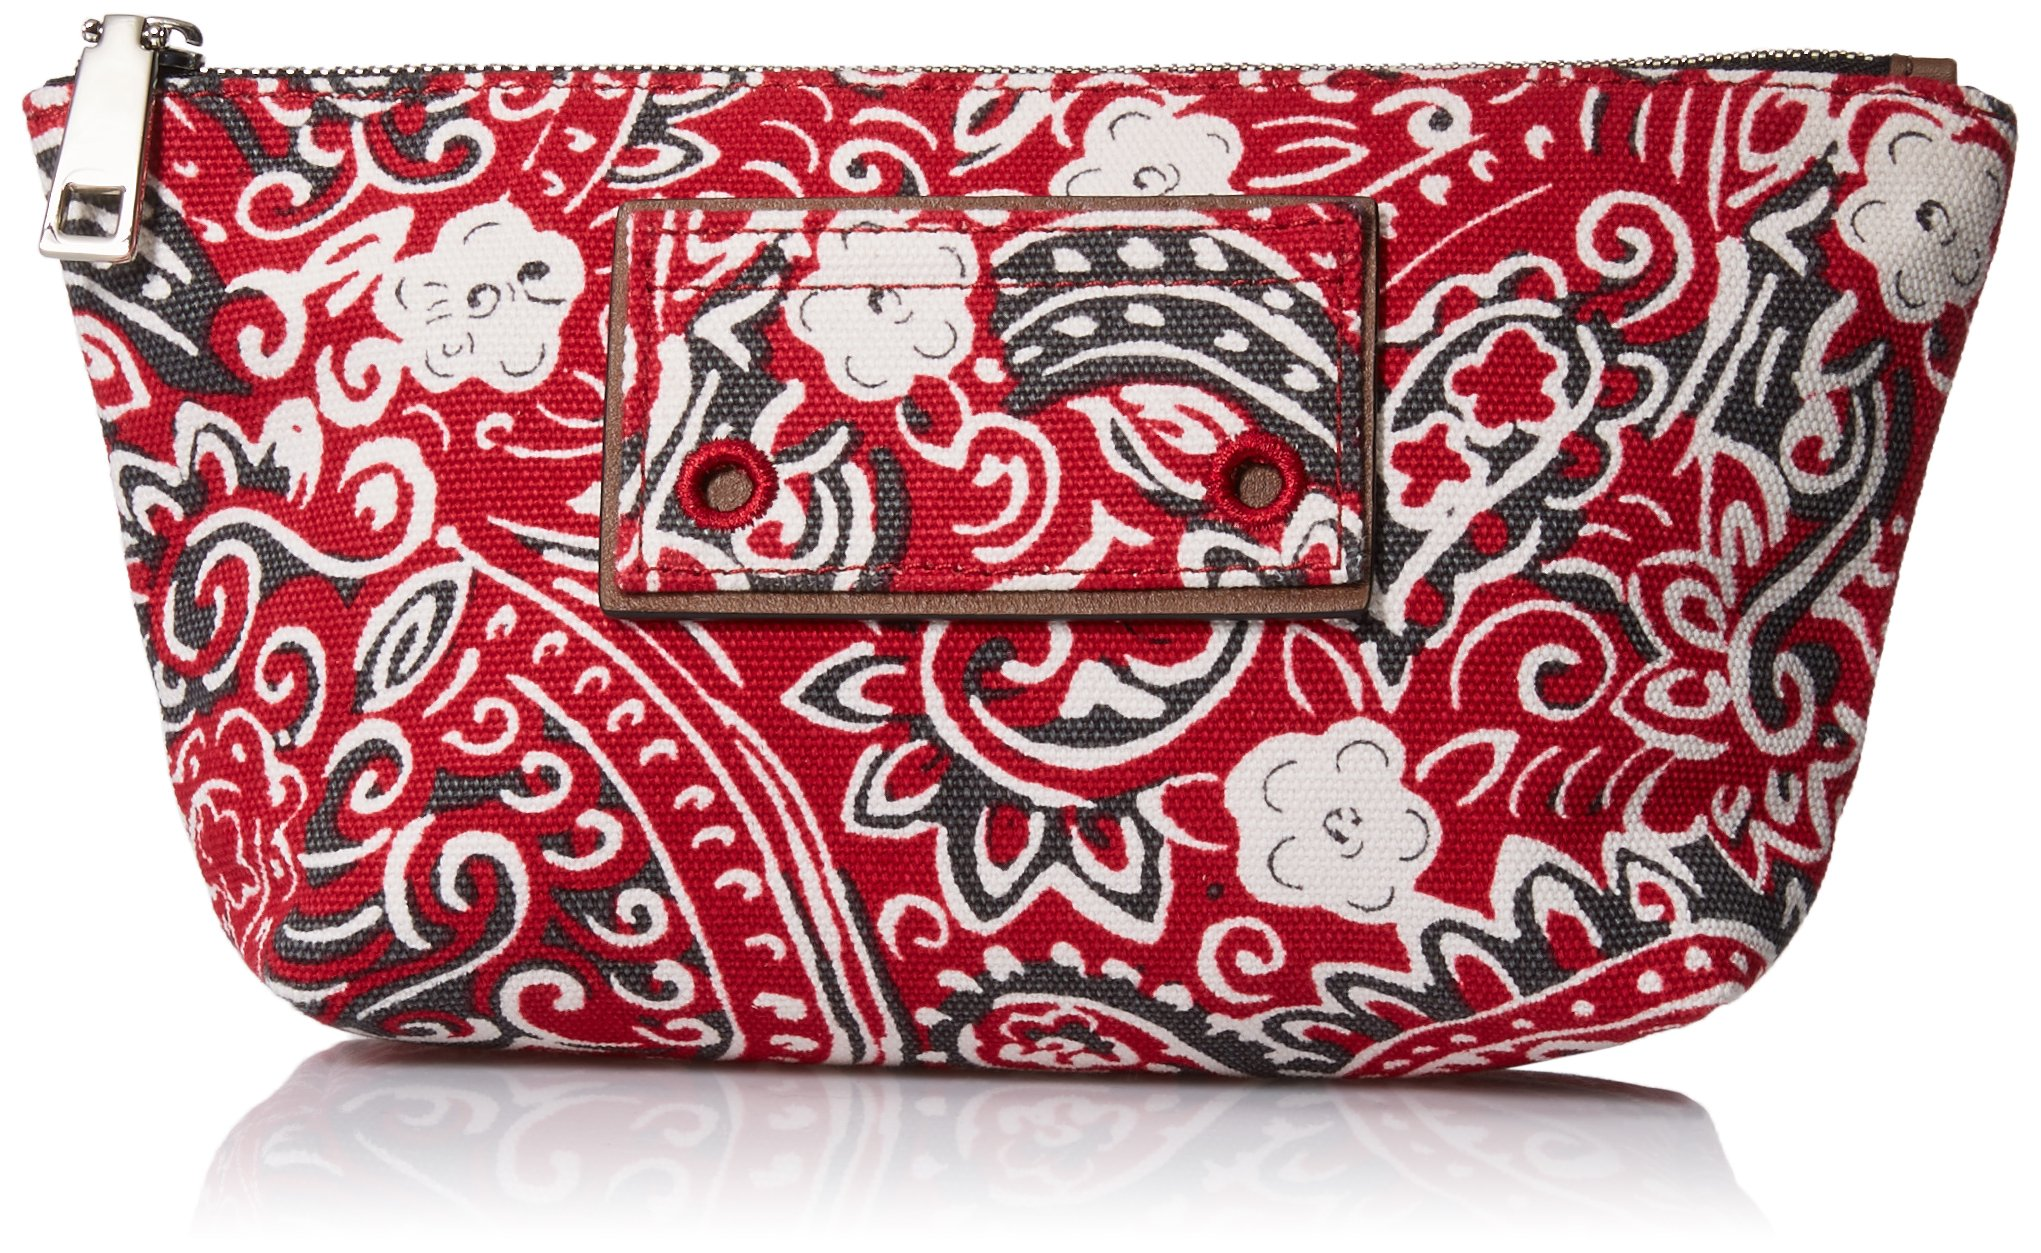 Marc Jacobs Paisley Cosmetics Trapezoid Bag, Chili Pepper Multi, One Size